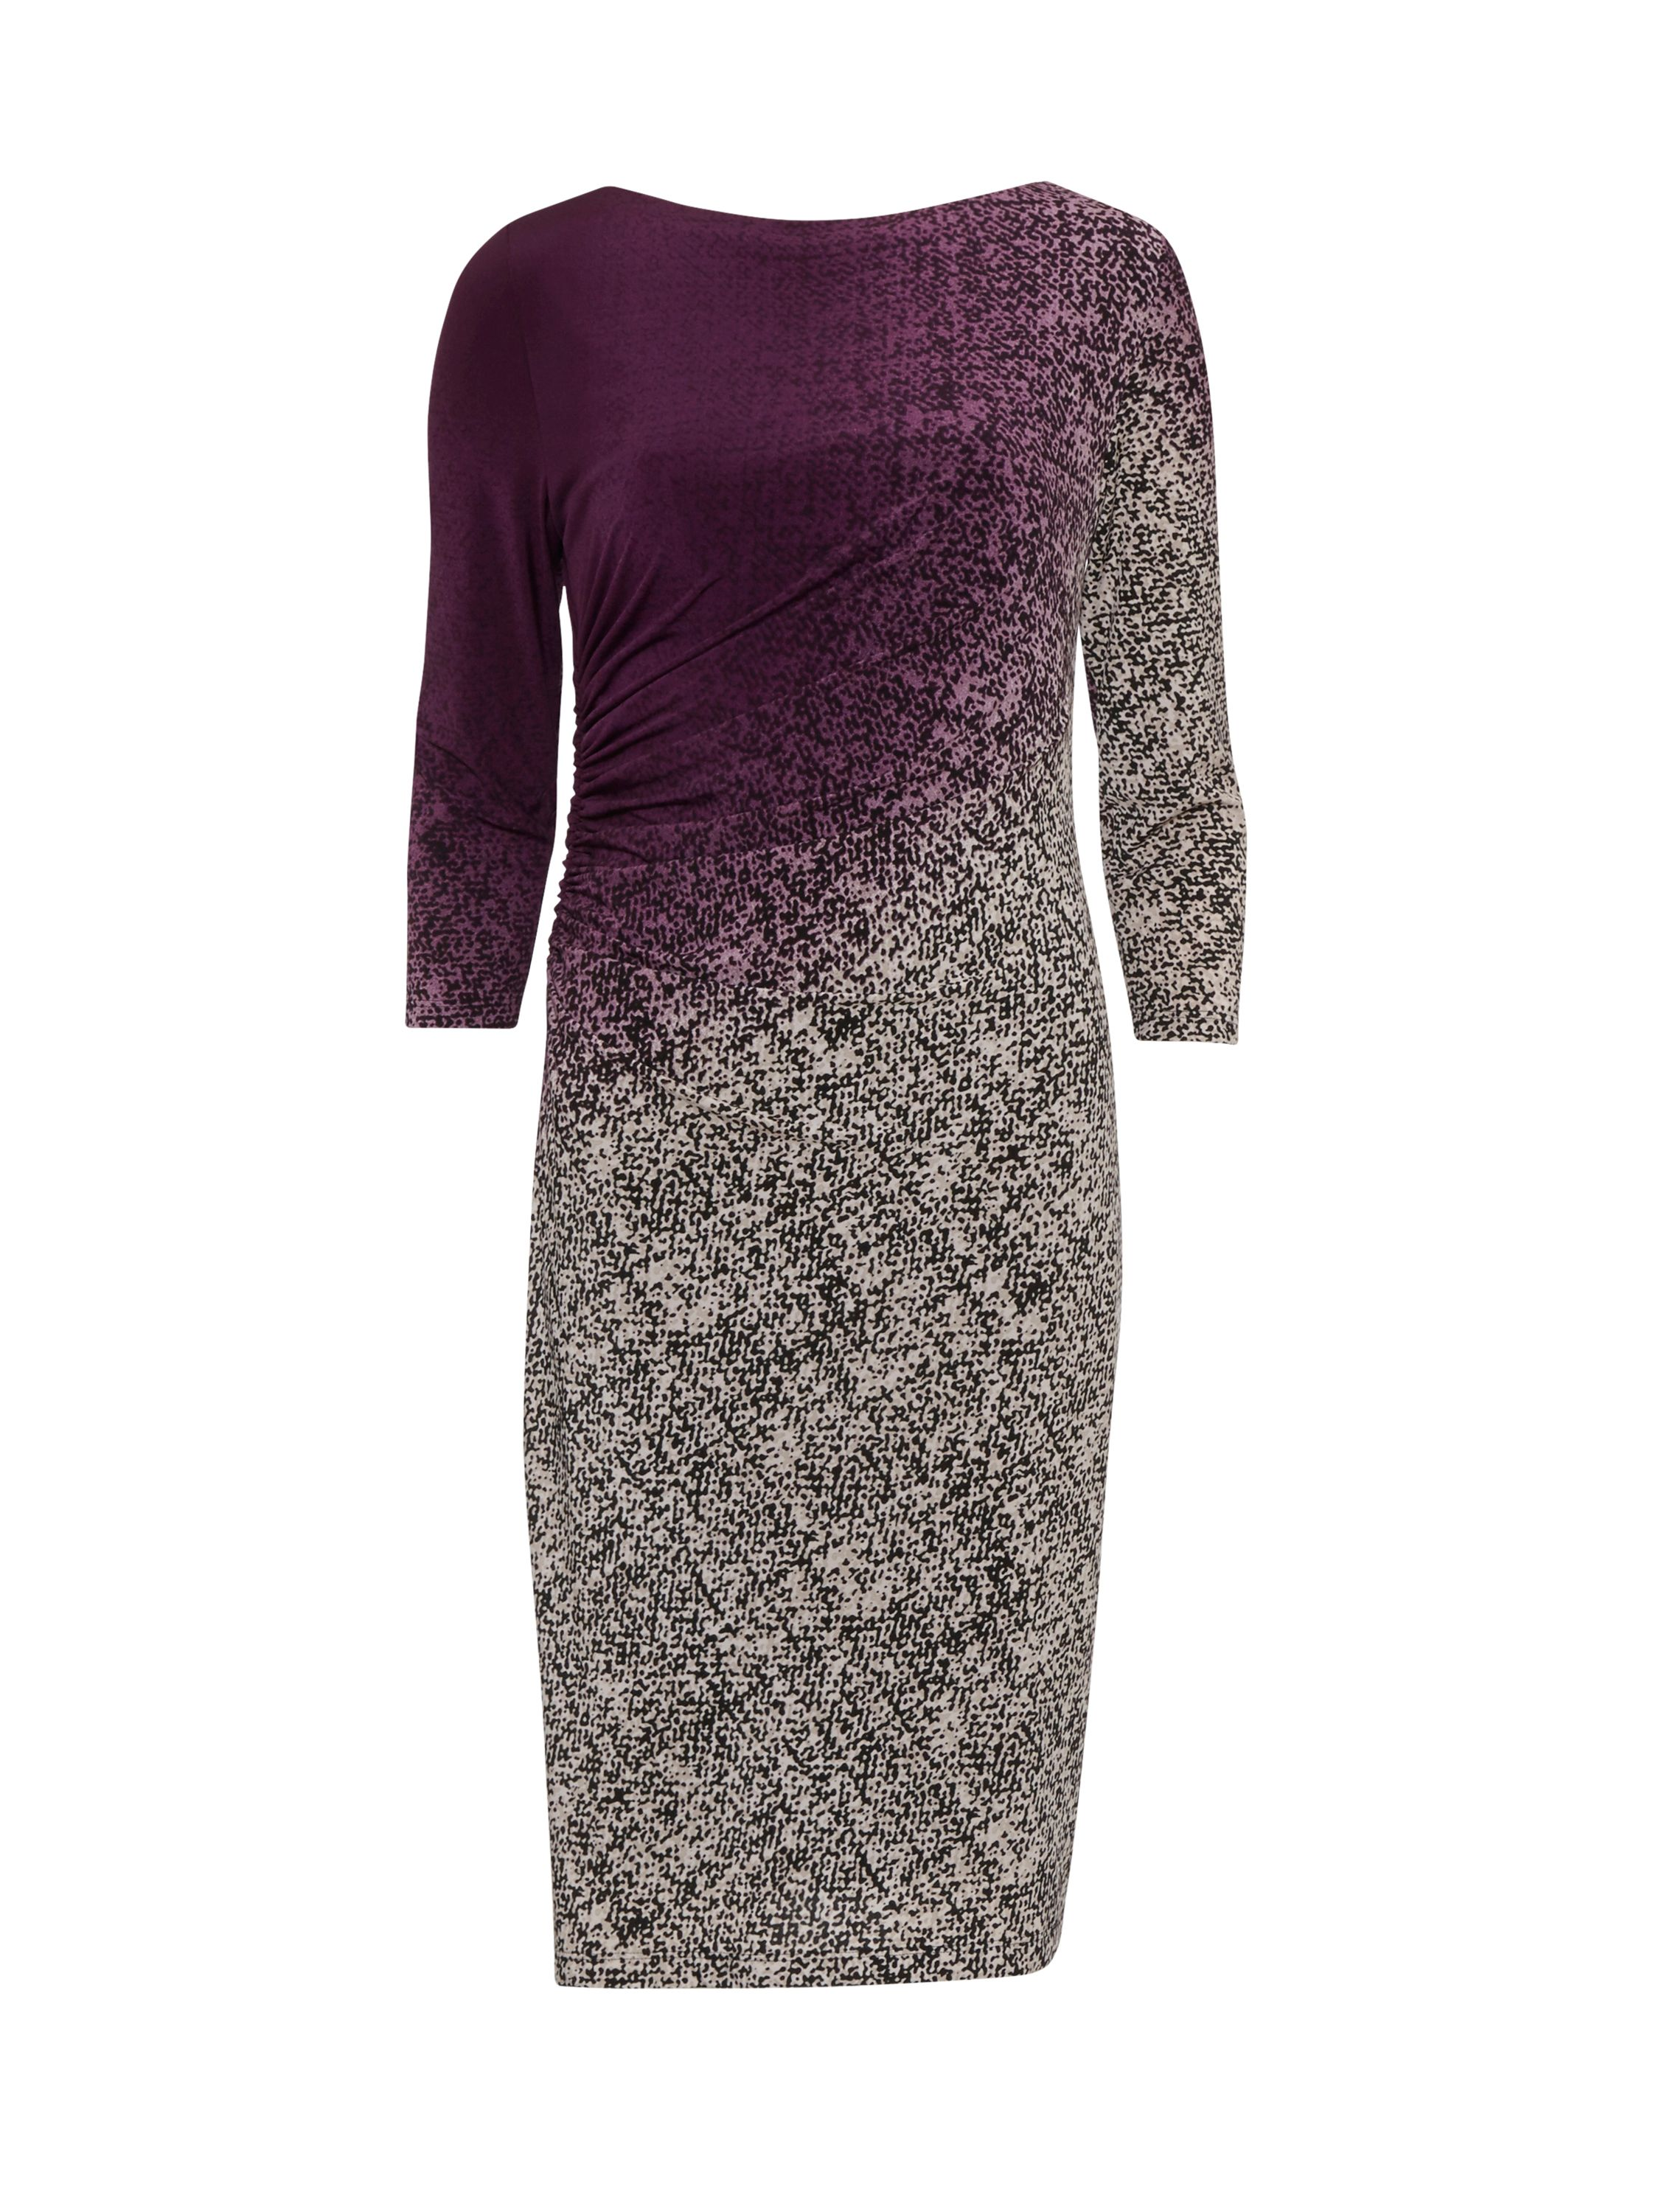 Gina Bacconi Ombre Autumn Jersey Dress, Purple